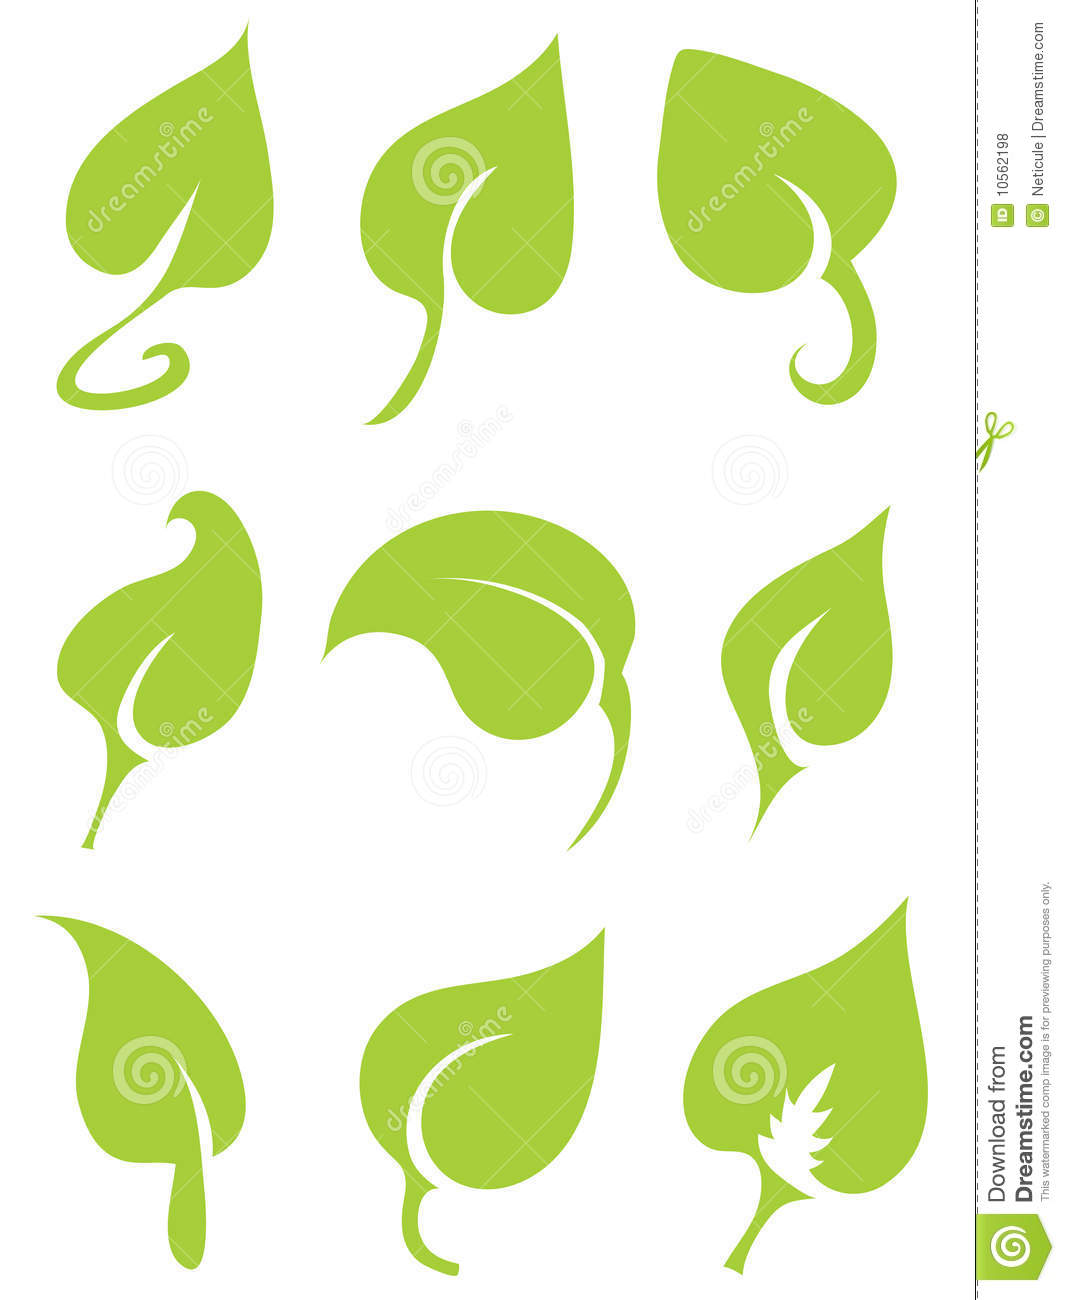 Green Vector Leaves Royalty Free Stock Photos - Image: 10562198